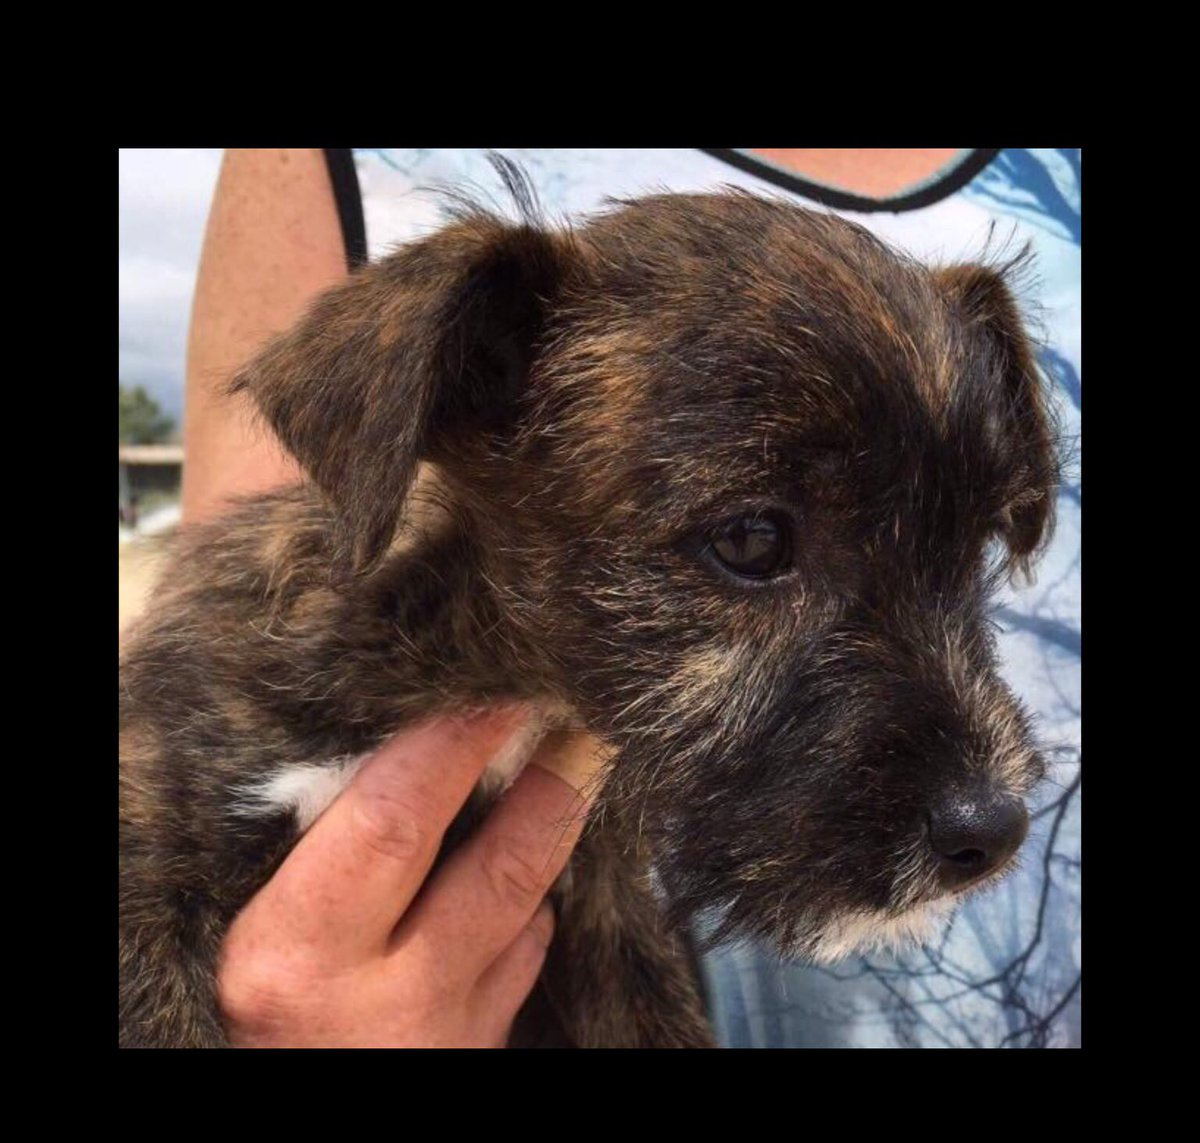 Found scared &amp; alone in #Zante, little Mustache was very #grateful to be rescued! He is a friendly, loving boy who loves to play with kids/dogs-he just want love. Can you help him find a #home in #UK #Germany #NL?   #AdoptDontShop #puppylove #dogsarefamily #dogsarejoy #puppy<br>http://pic.twitter.com/7jsk08lOmz